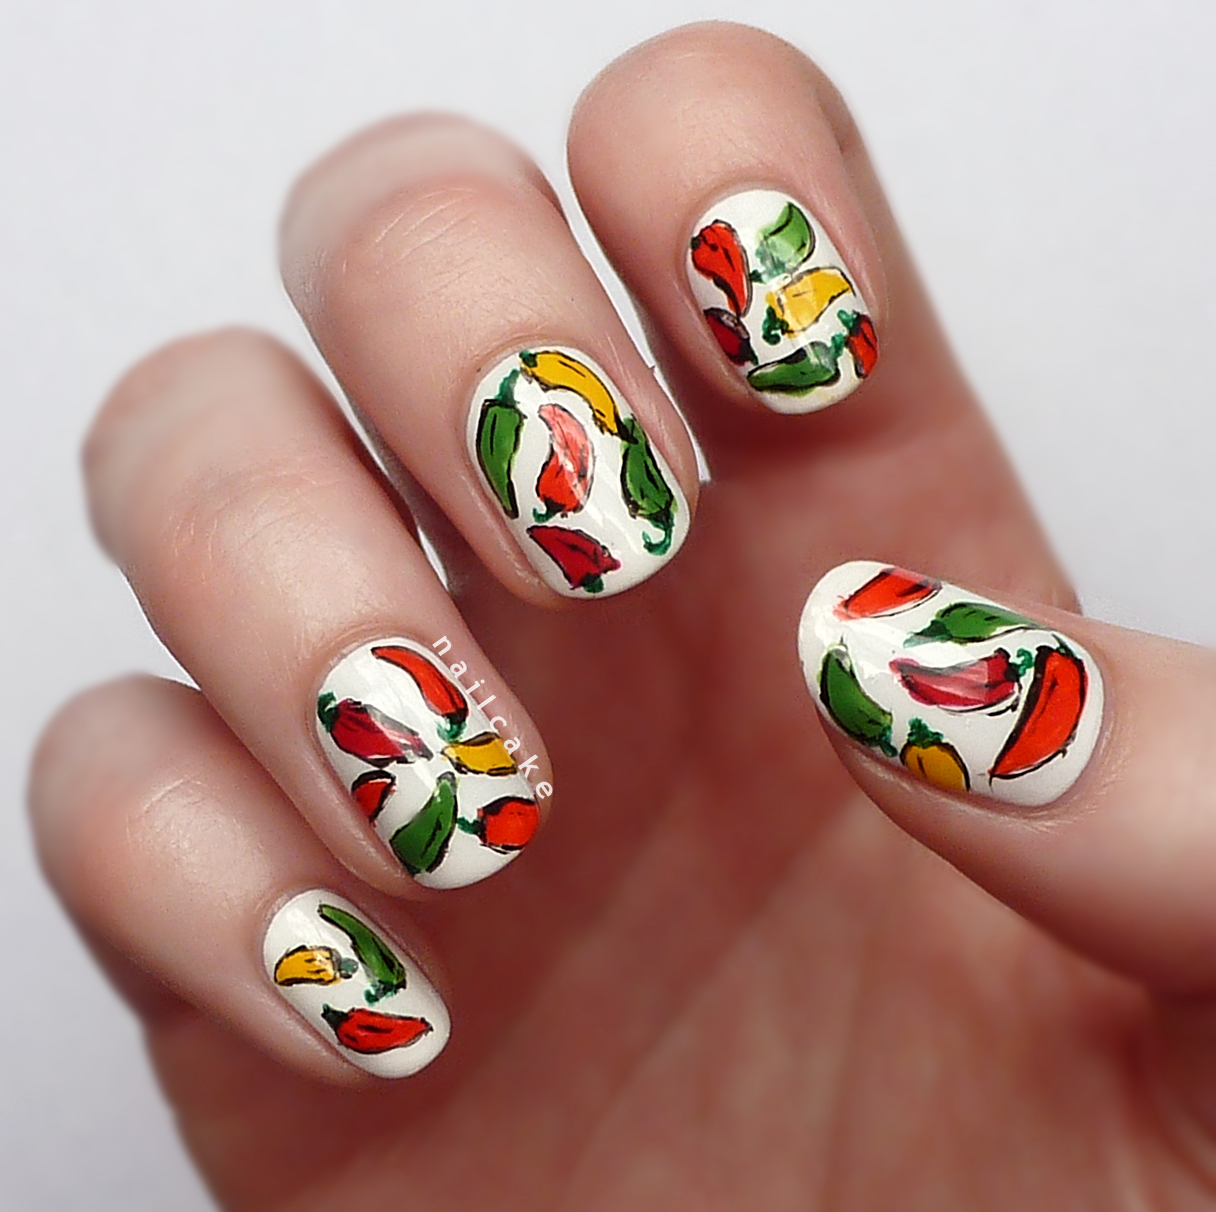 Nail cake feelin hot hot hot chilli pepper nail art feelin hot hot hot chilli pepper nail art prinsesfo Choice Image